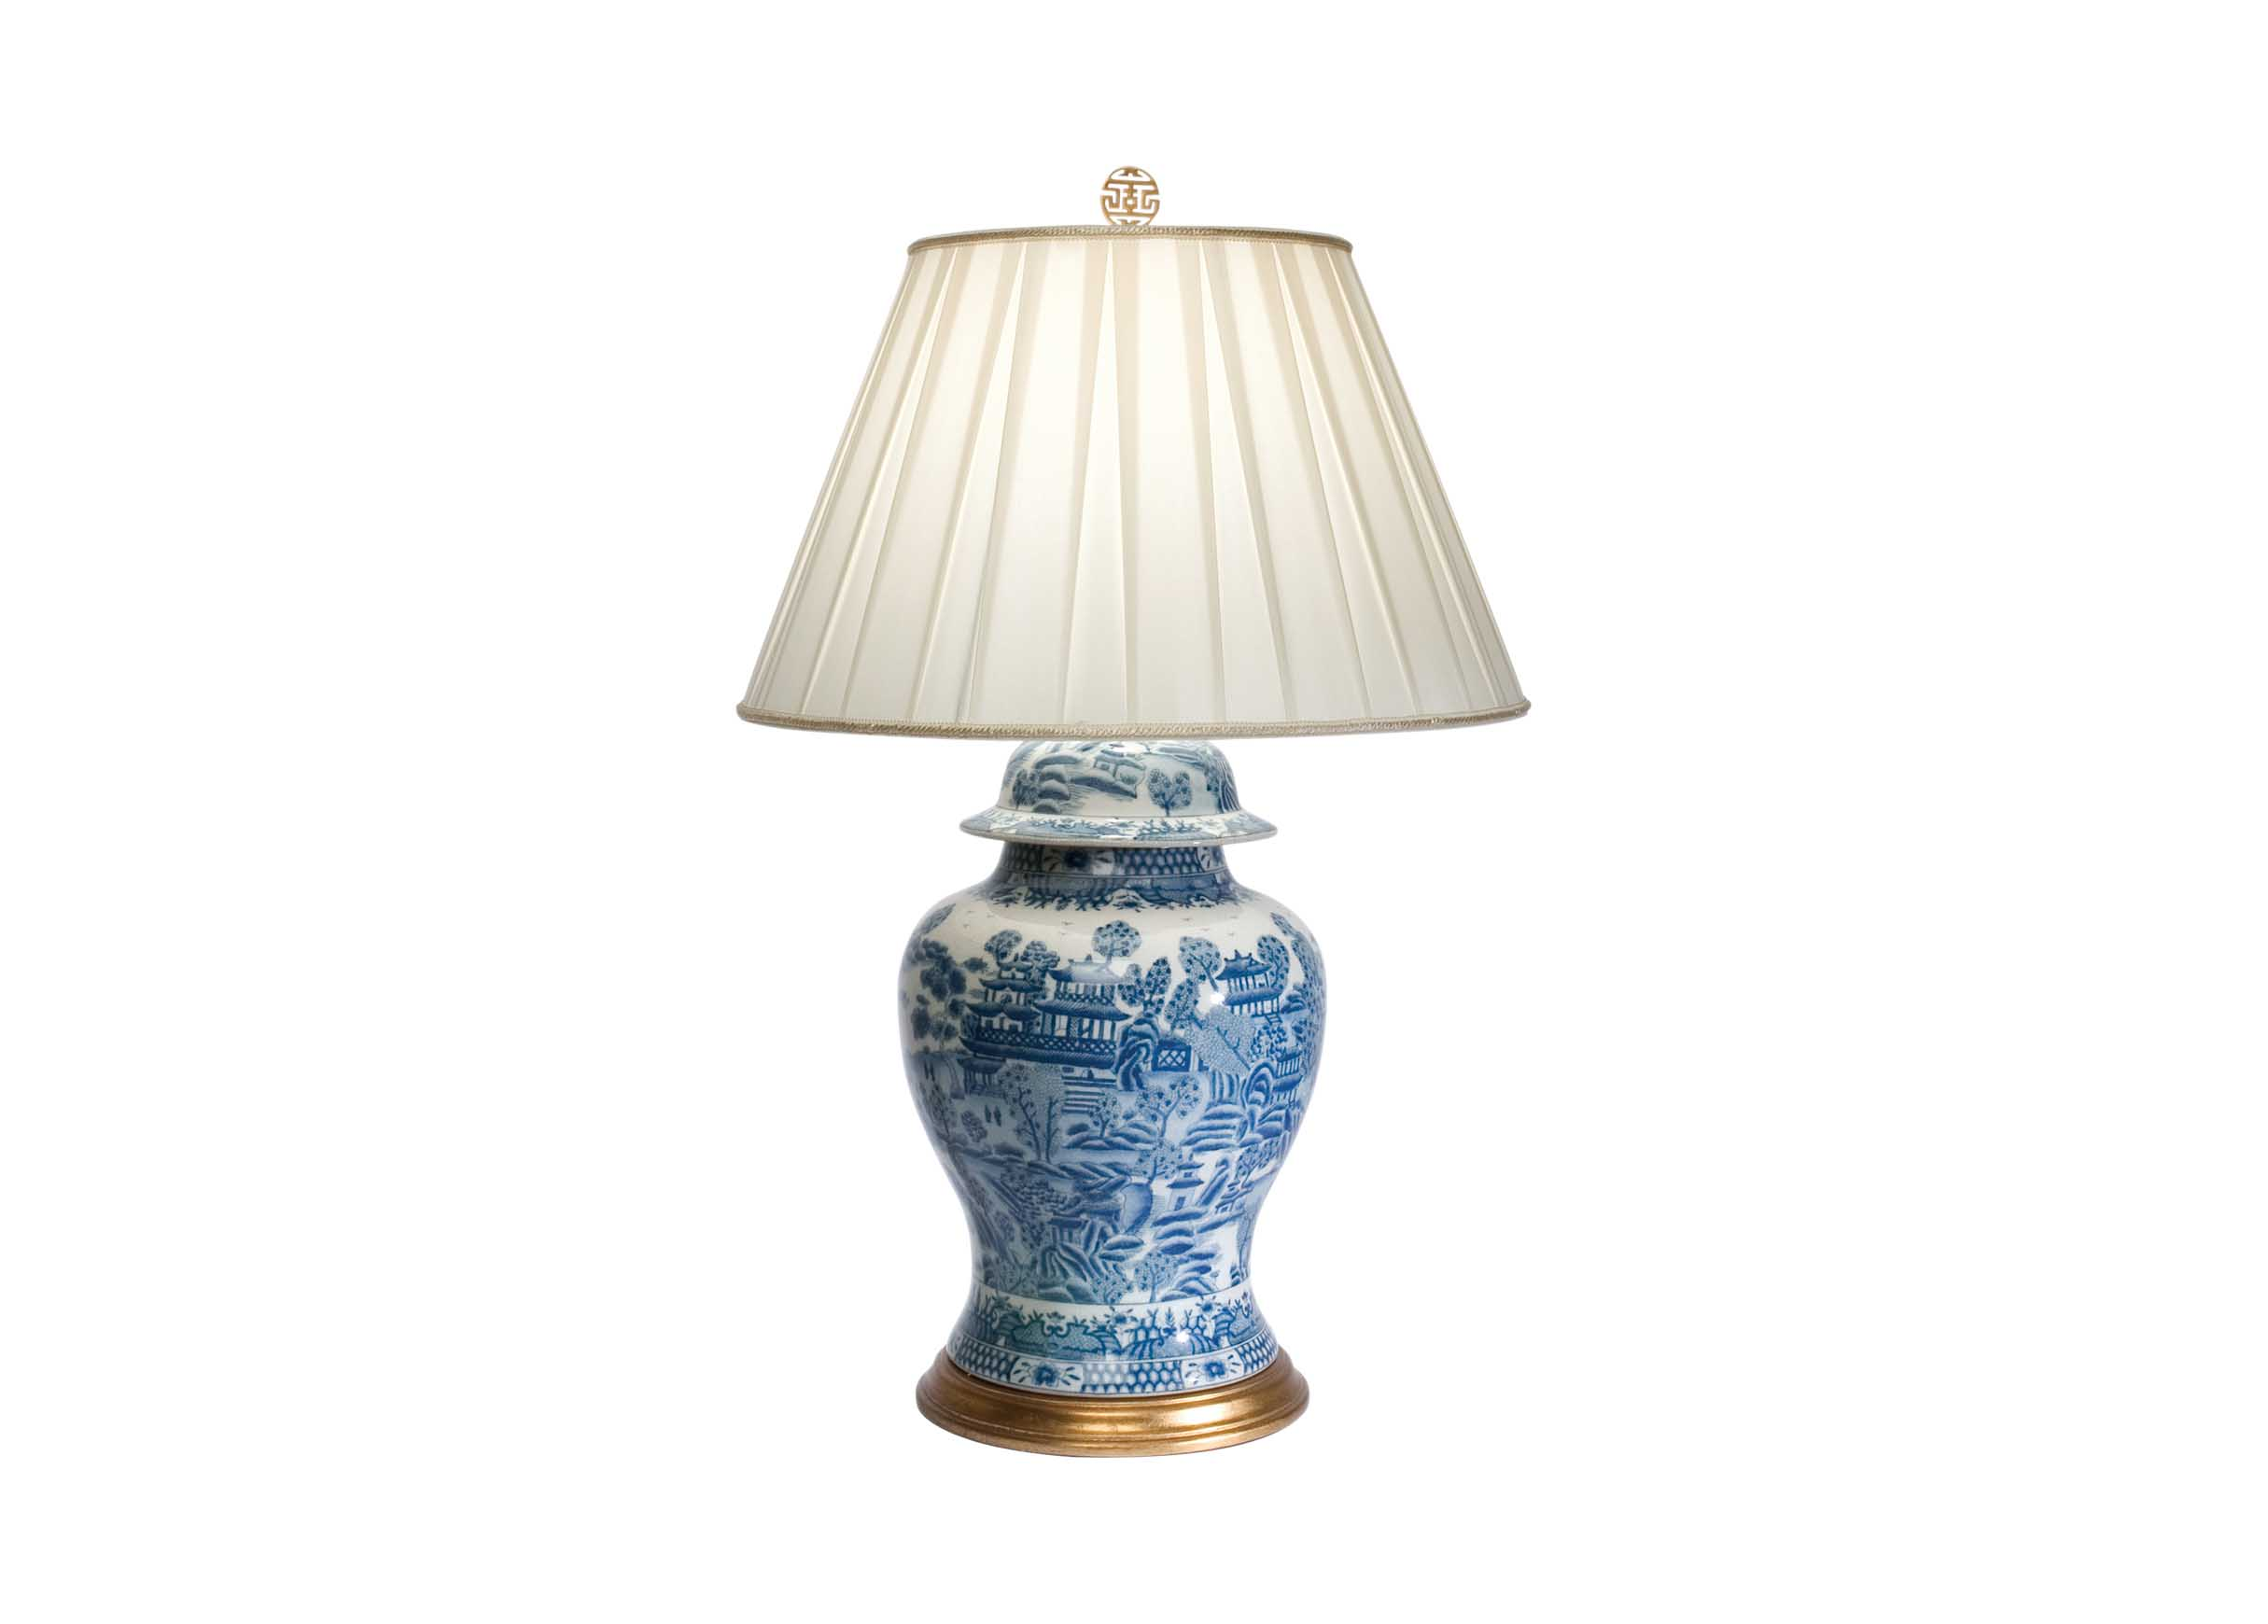 Classic Ginger Jar Table Lamp TABLE LAMPS Ethan Allen